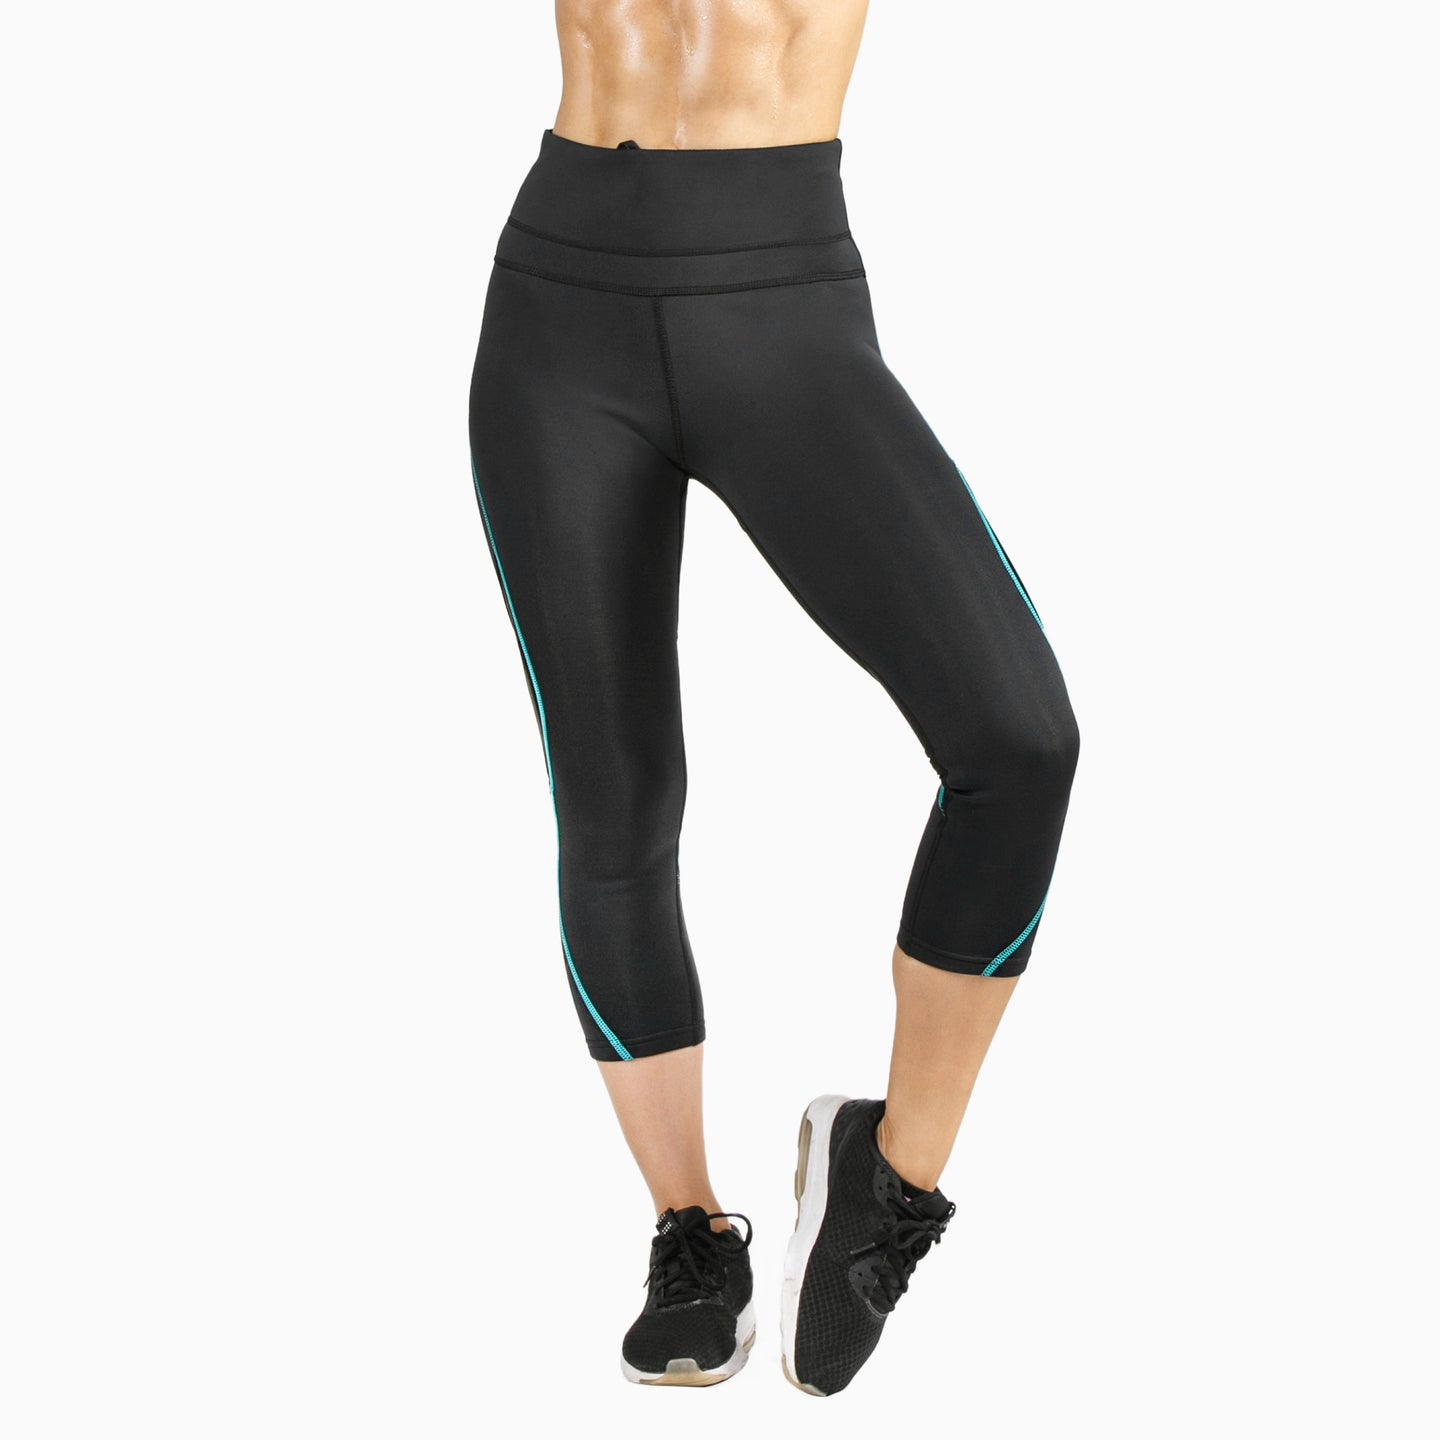 Magma Women's Sauna Leggings